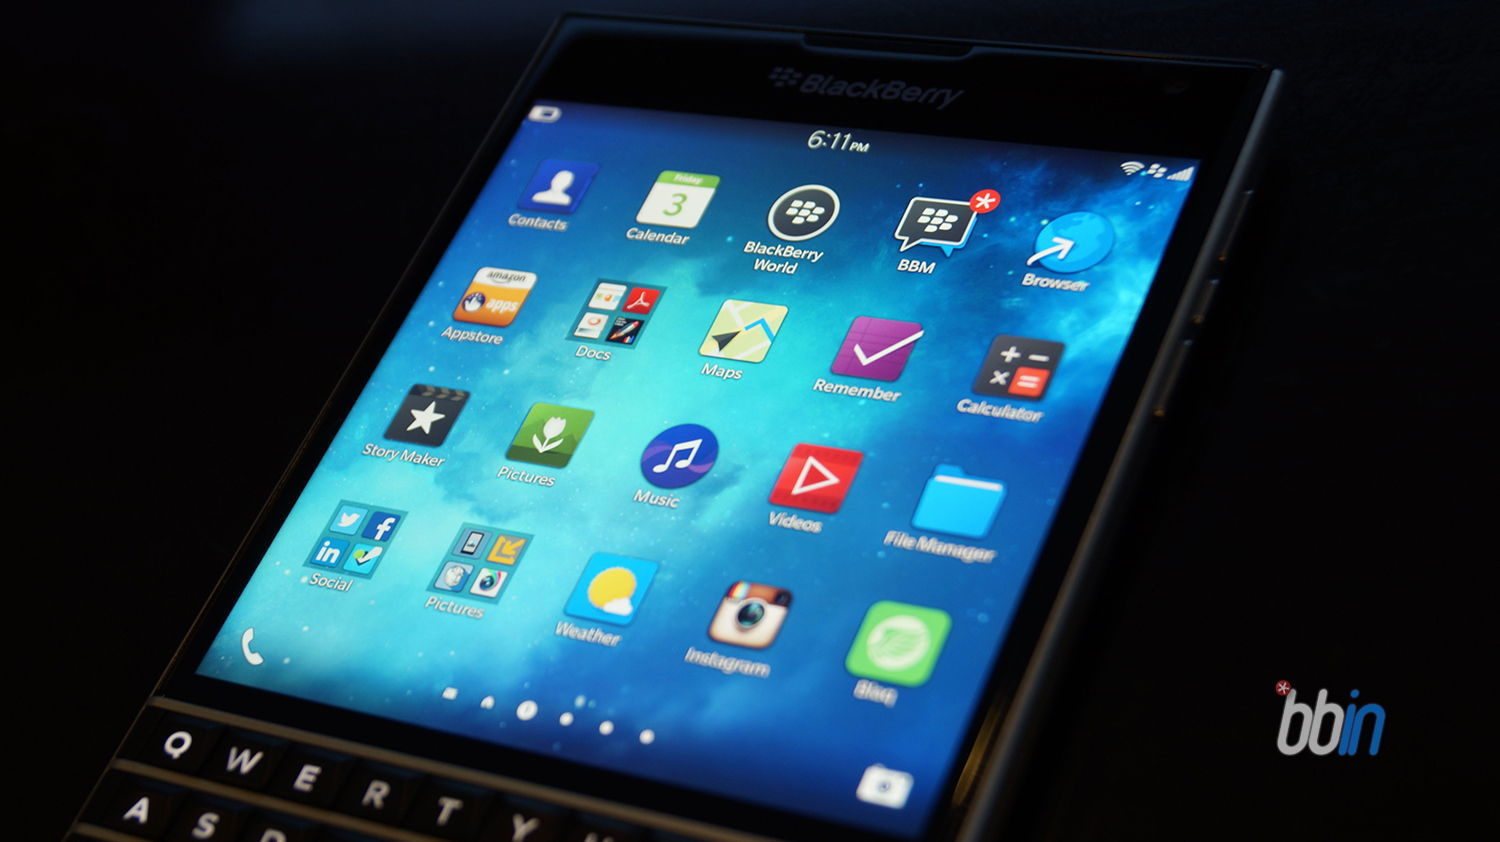 March Giveaway: Grab Your Free Premium Apps From Blackberry World